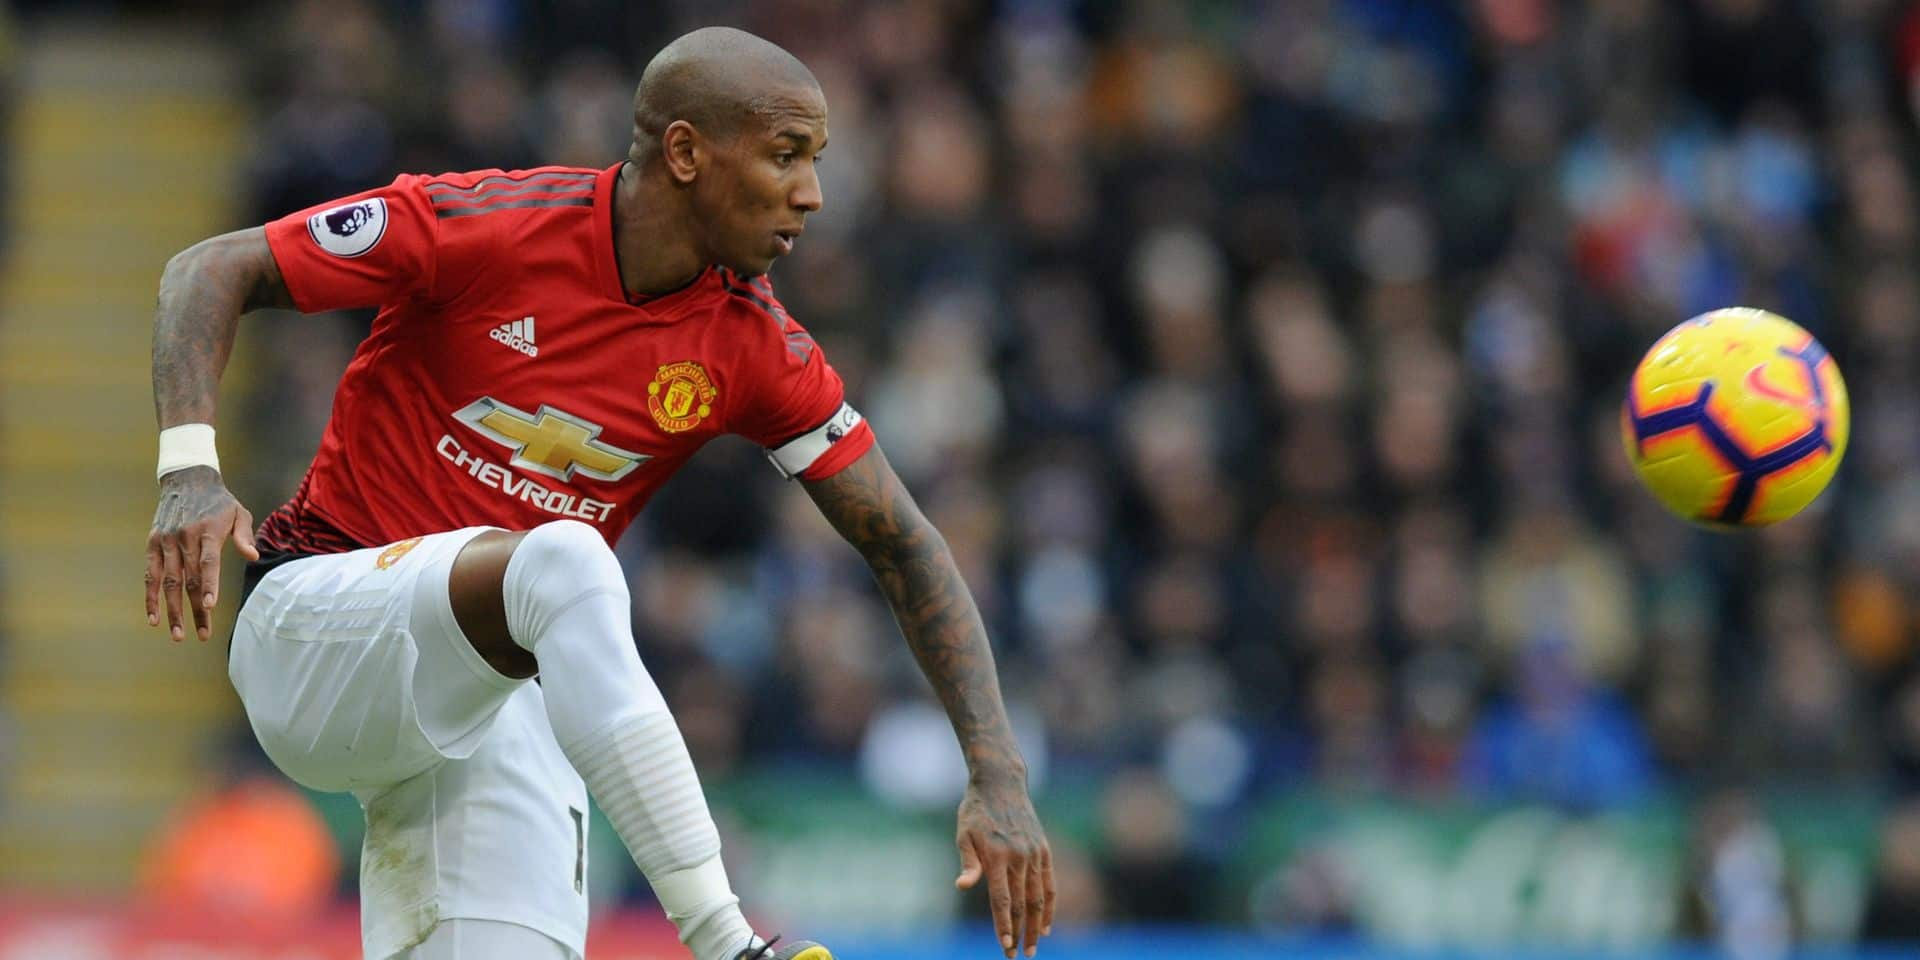 Manchester United condamne les attaques racistes visant Ashley Young